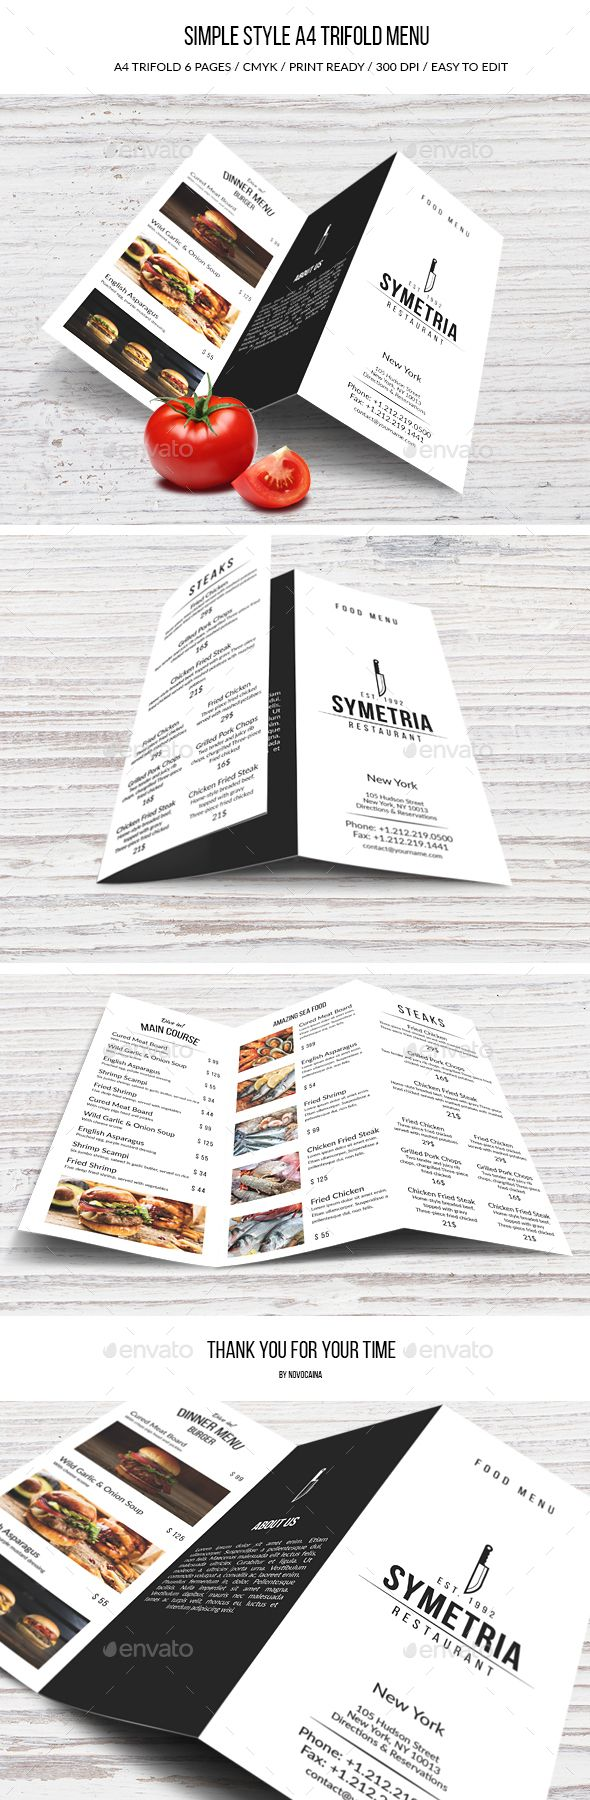 Simple Style A4 Trifold Menu — Photoshop PSD #menu design #classic • Available here → https://graphicriver.net/item/simple-style-a4-trifold-menu/16510179?ref=pxcr